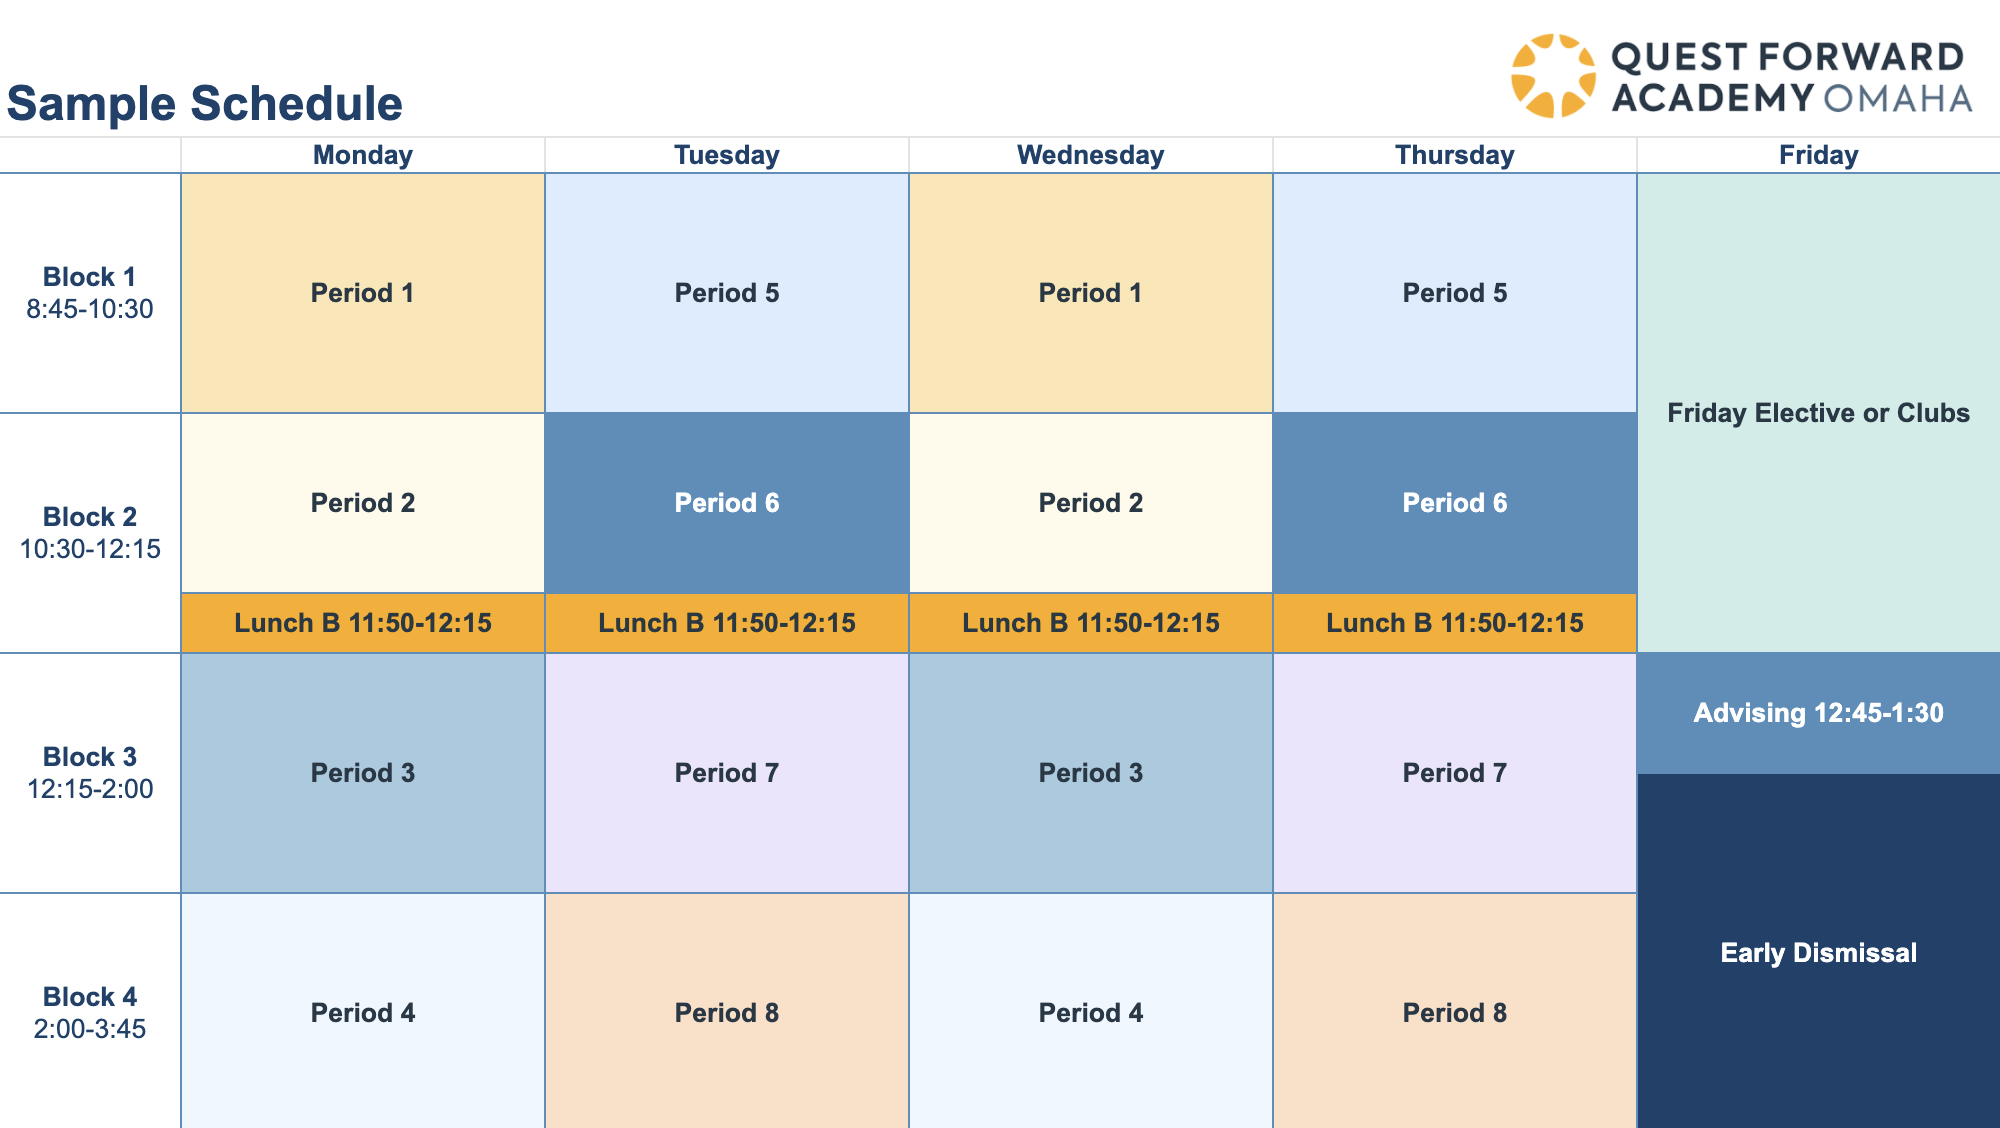 A sample student weekly class schedule at Quest Forward Academy Omaha.